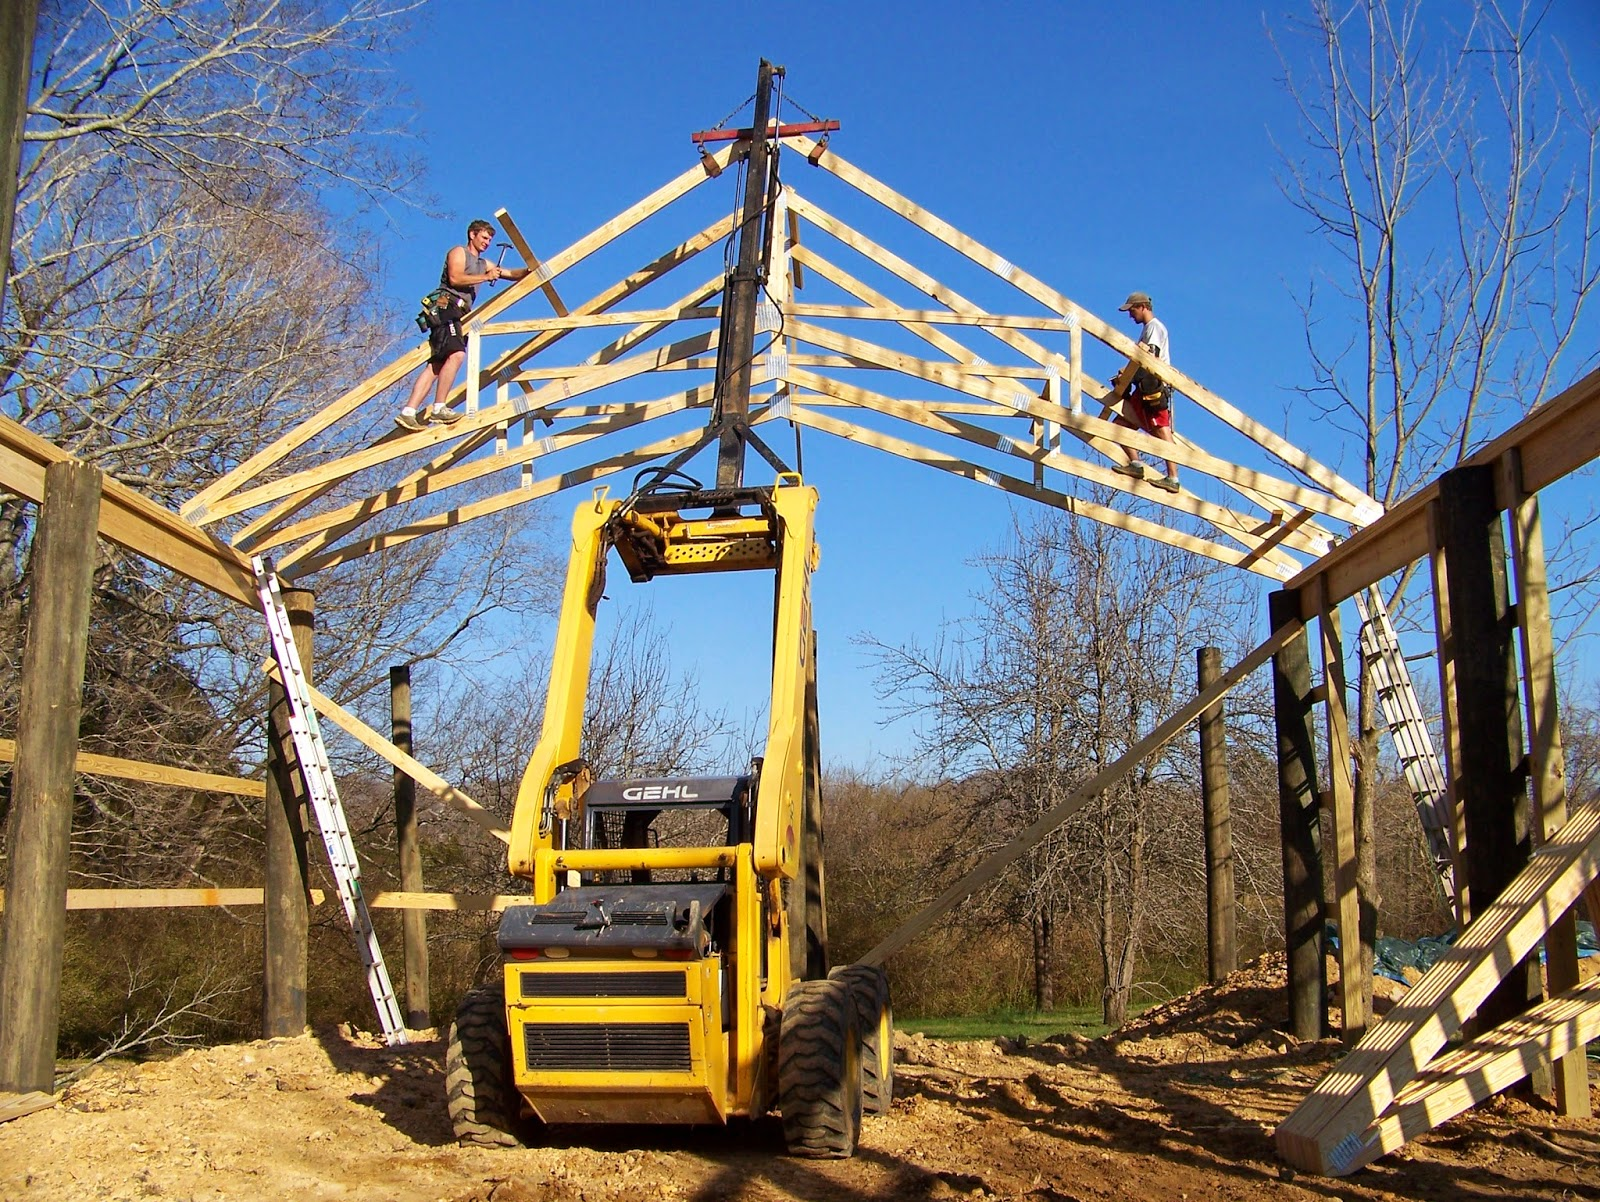 Here Is The Scissor Trusses We Can Set With Our Gehl Skid Steer And Hydraulic Boom Pole